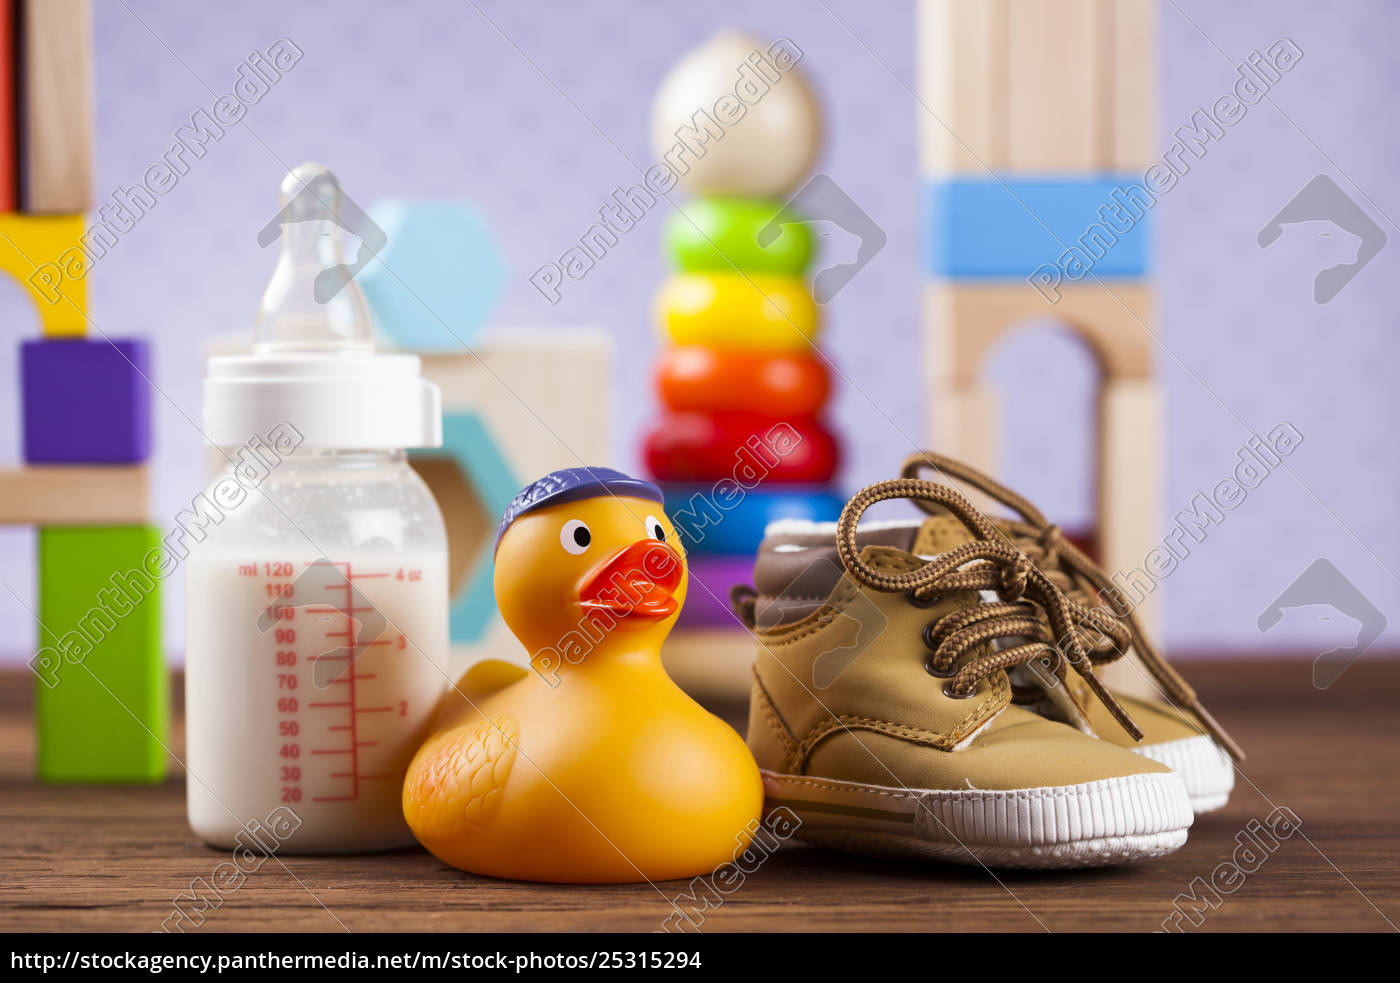 baby, world, toy, collection, on, on - 25315294